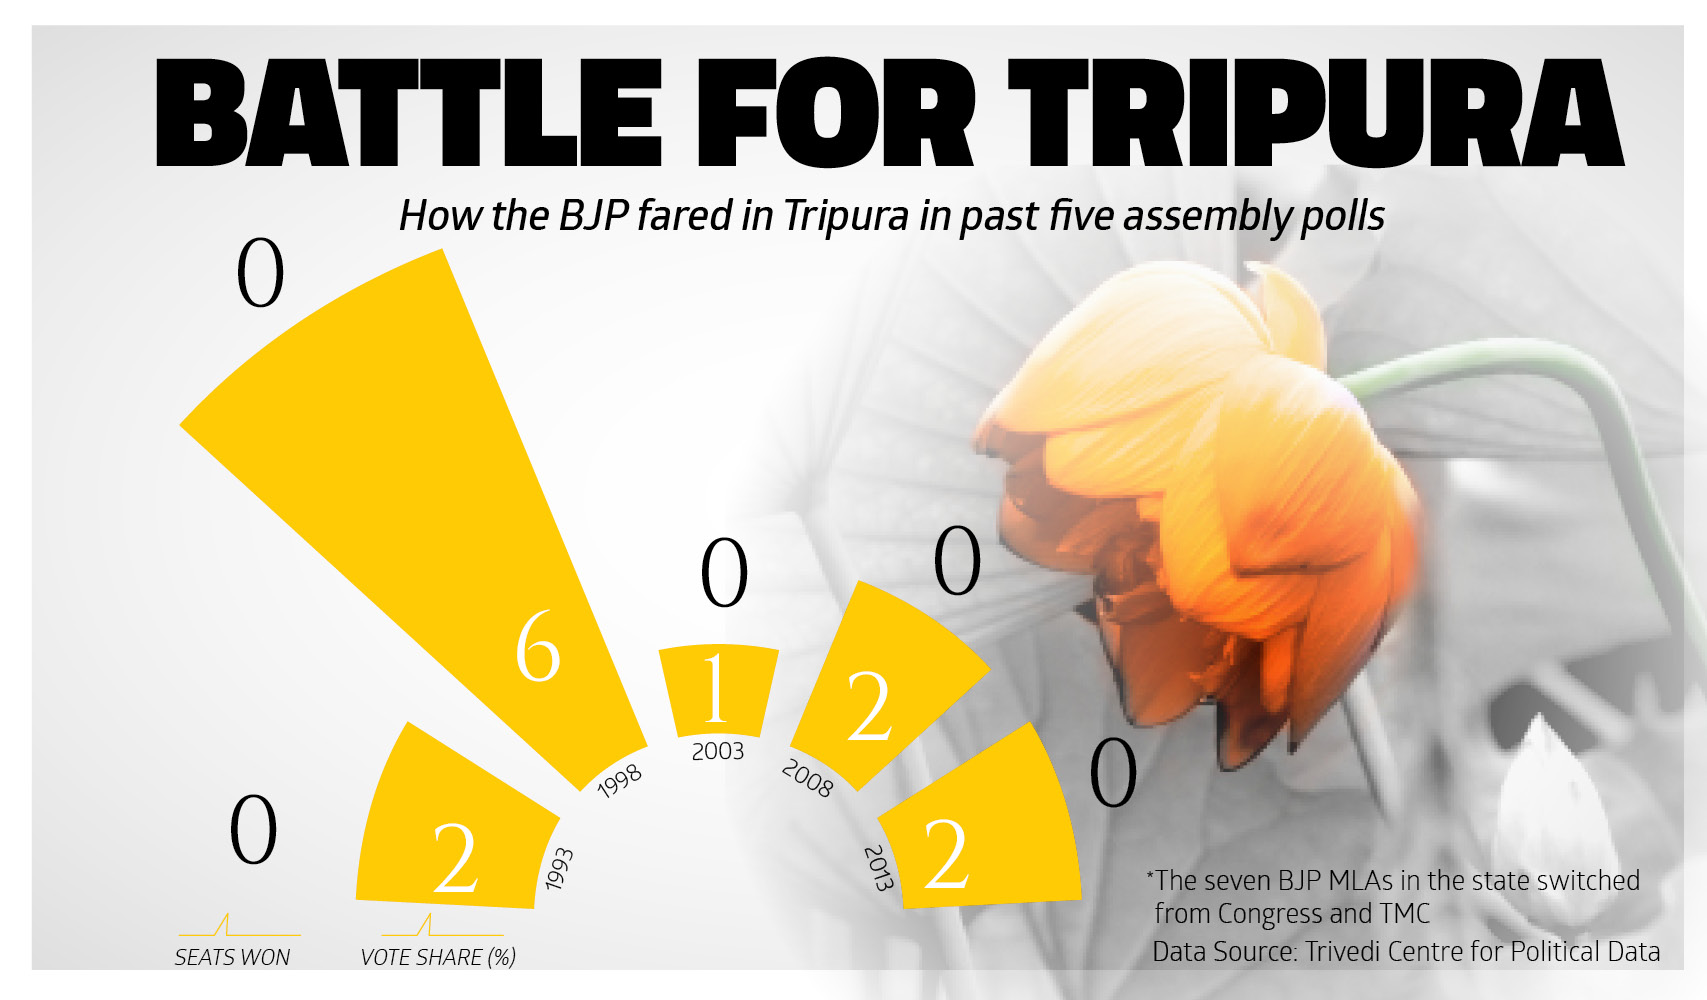 How the BJP fared in Tripura in the past five assembly polls